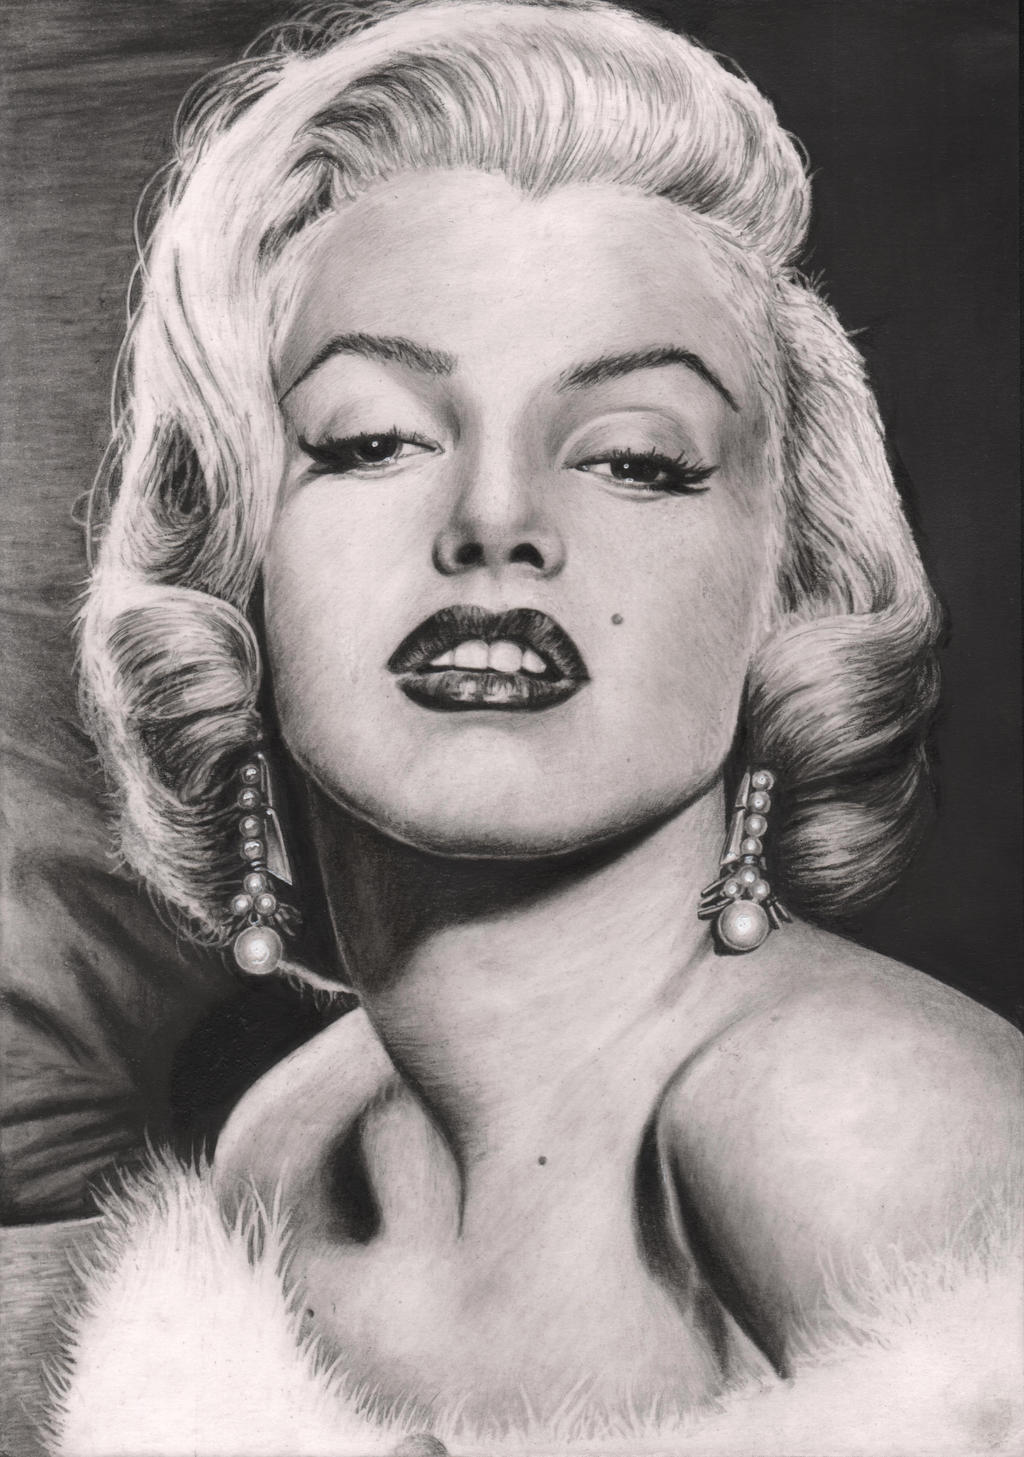 'Marylin Manroe' graphite portrait by Pen-Tacular-Artist